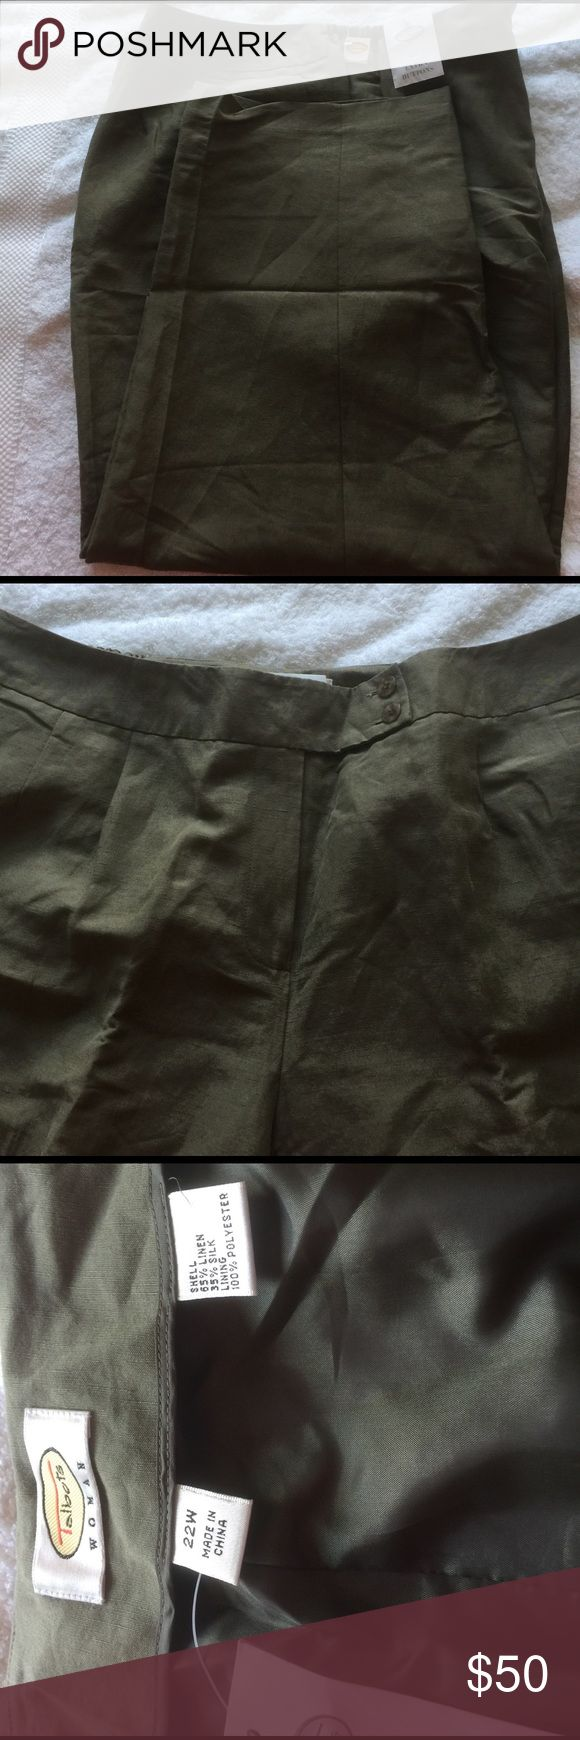 Women's plus size trousers Olive/Loden green Linen Silk blend trousers. Never worn New with tags. Button and zipper in front with elastic on sides for that extra give. Talbots Pants Trousers